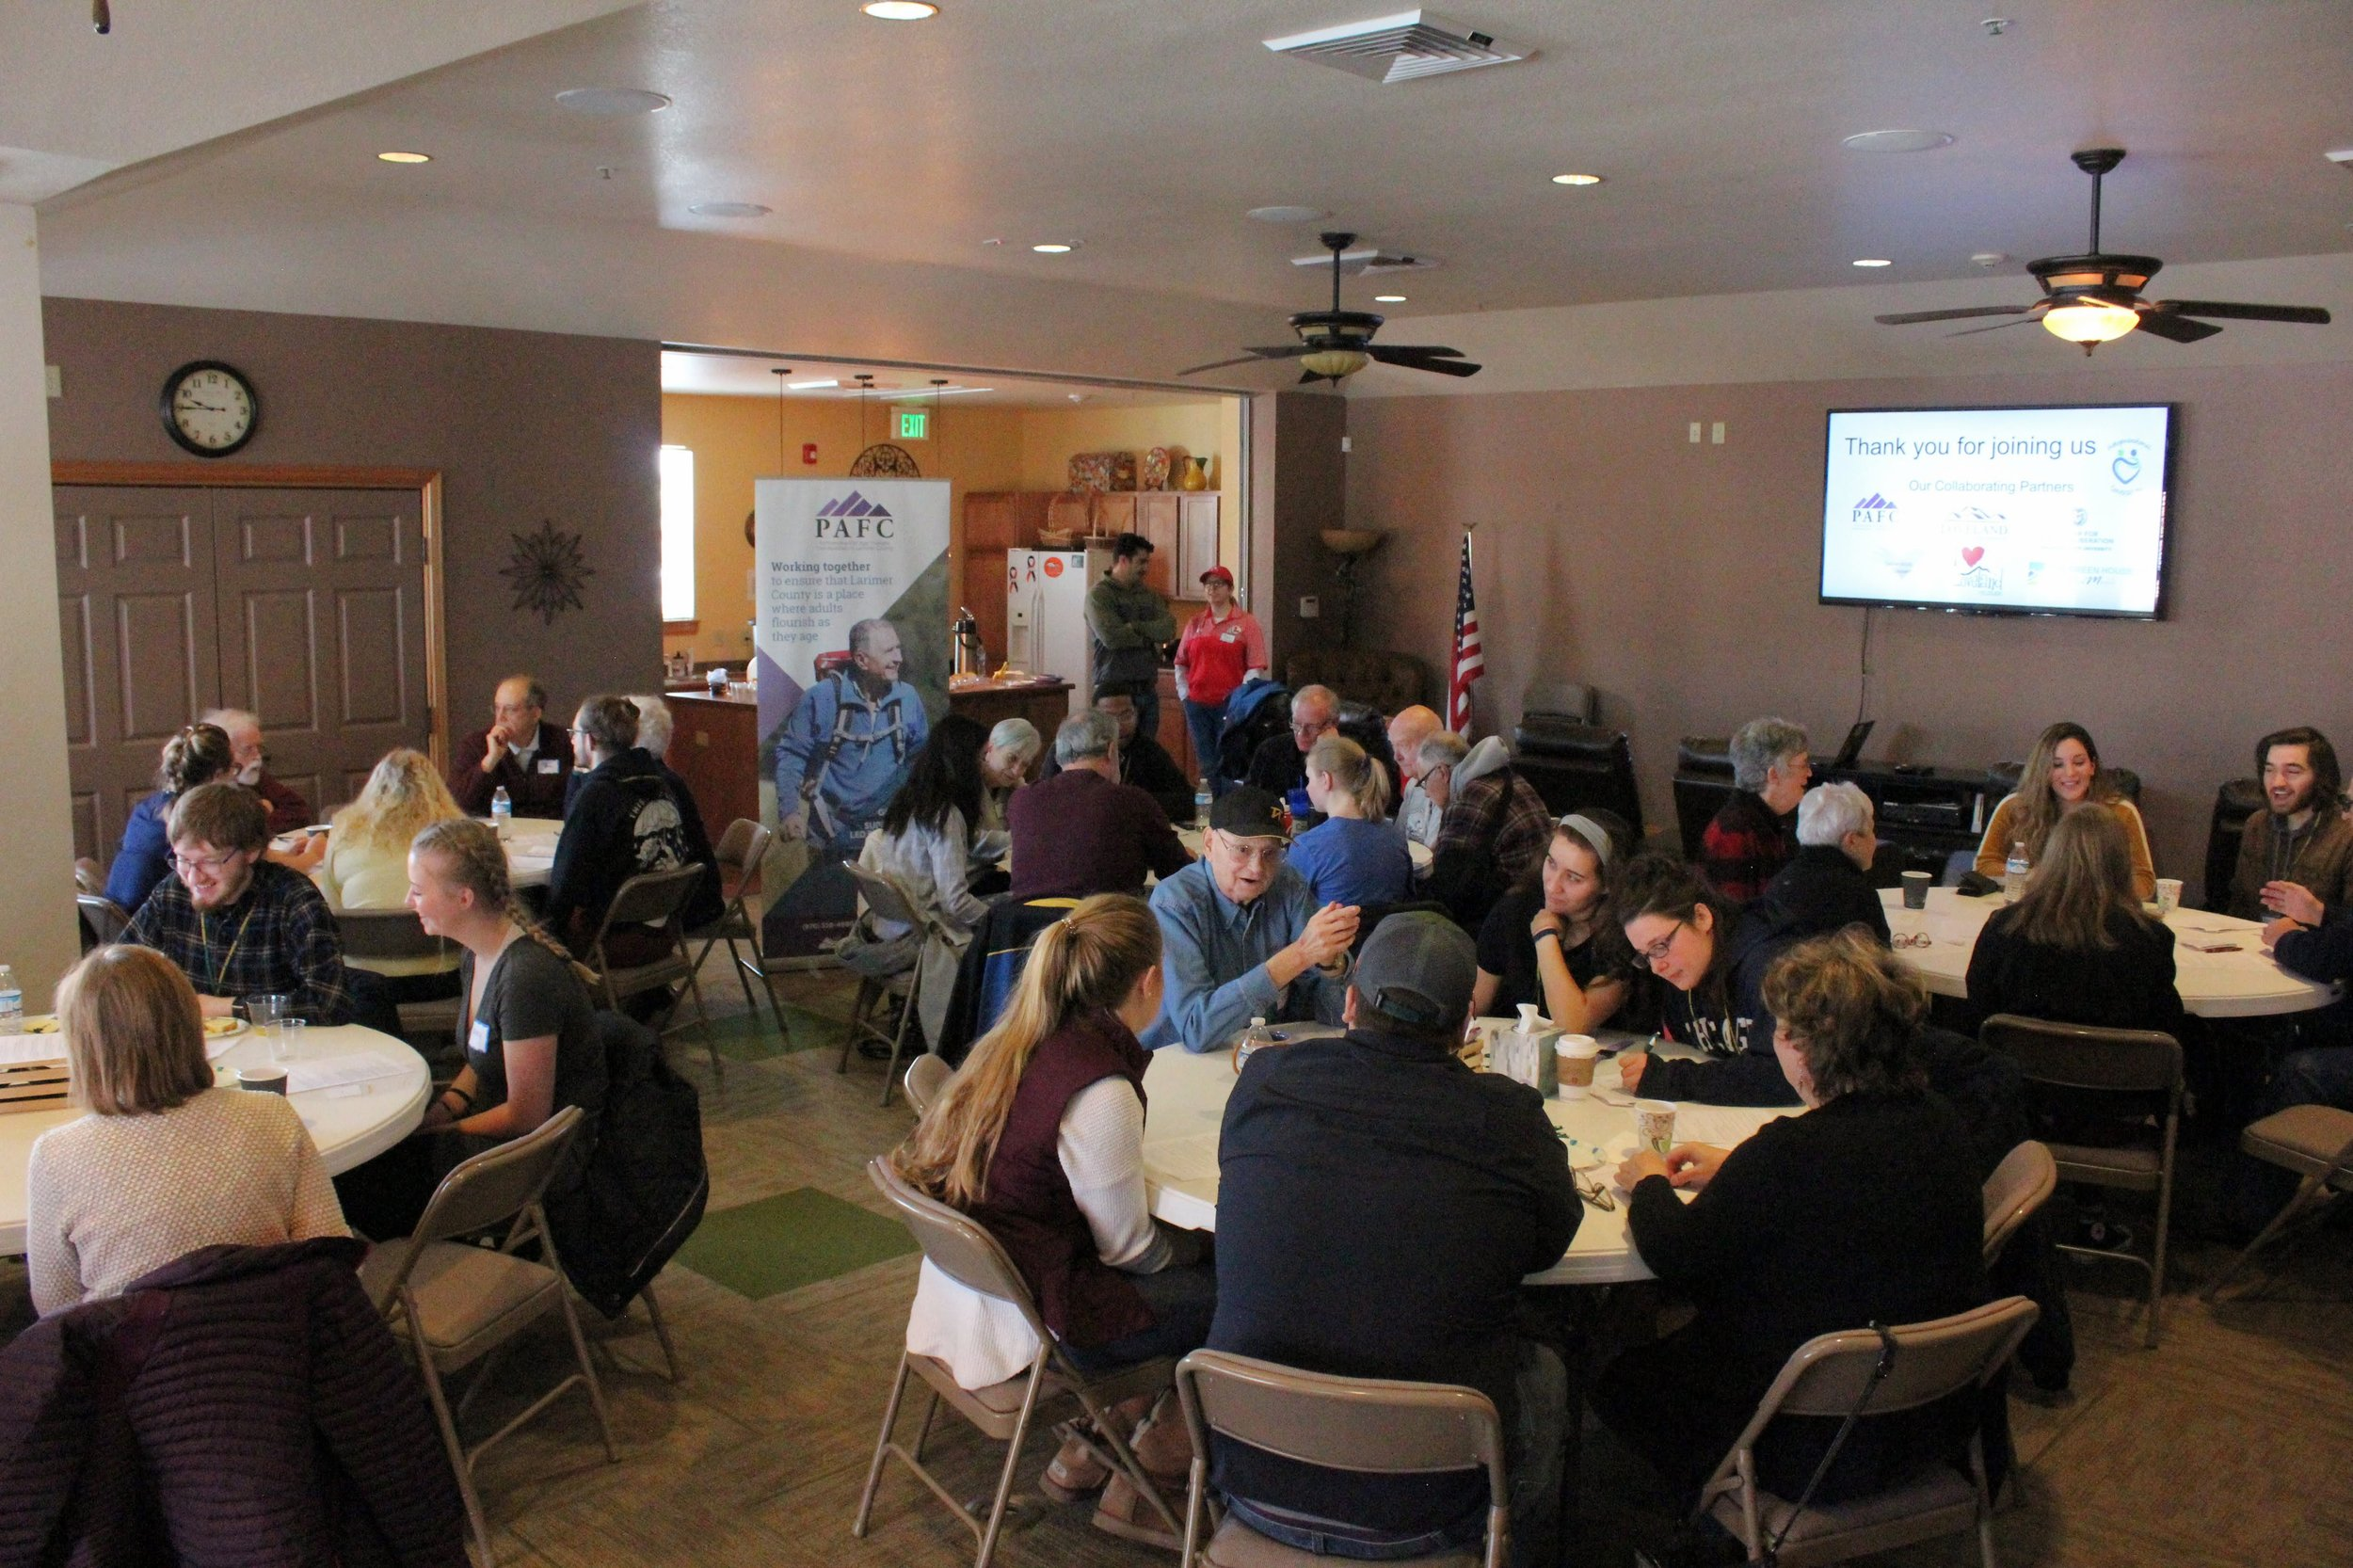 Our first conversation event held Saturday, February 23 2019 at the Mirasol Event Center. Click  here  for more photos of the event.